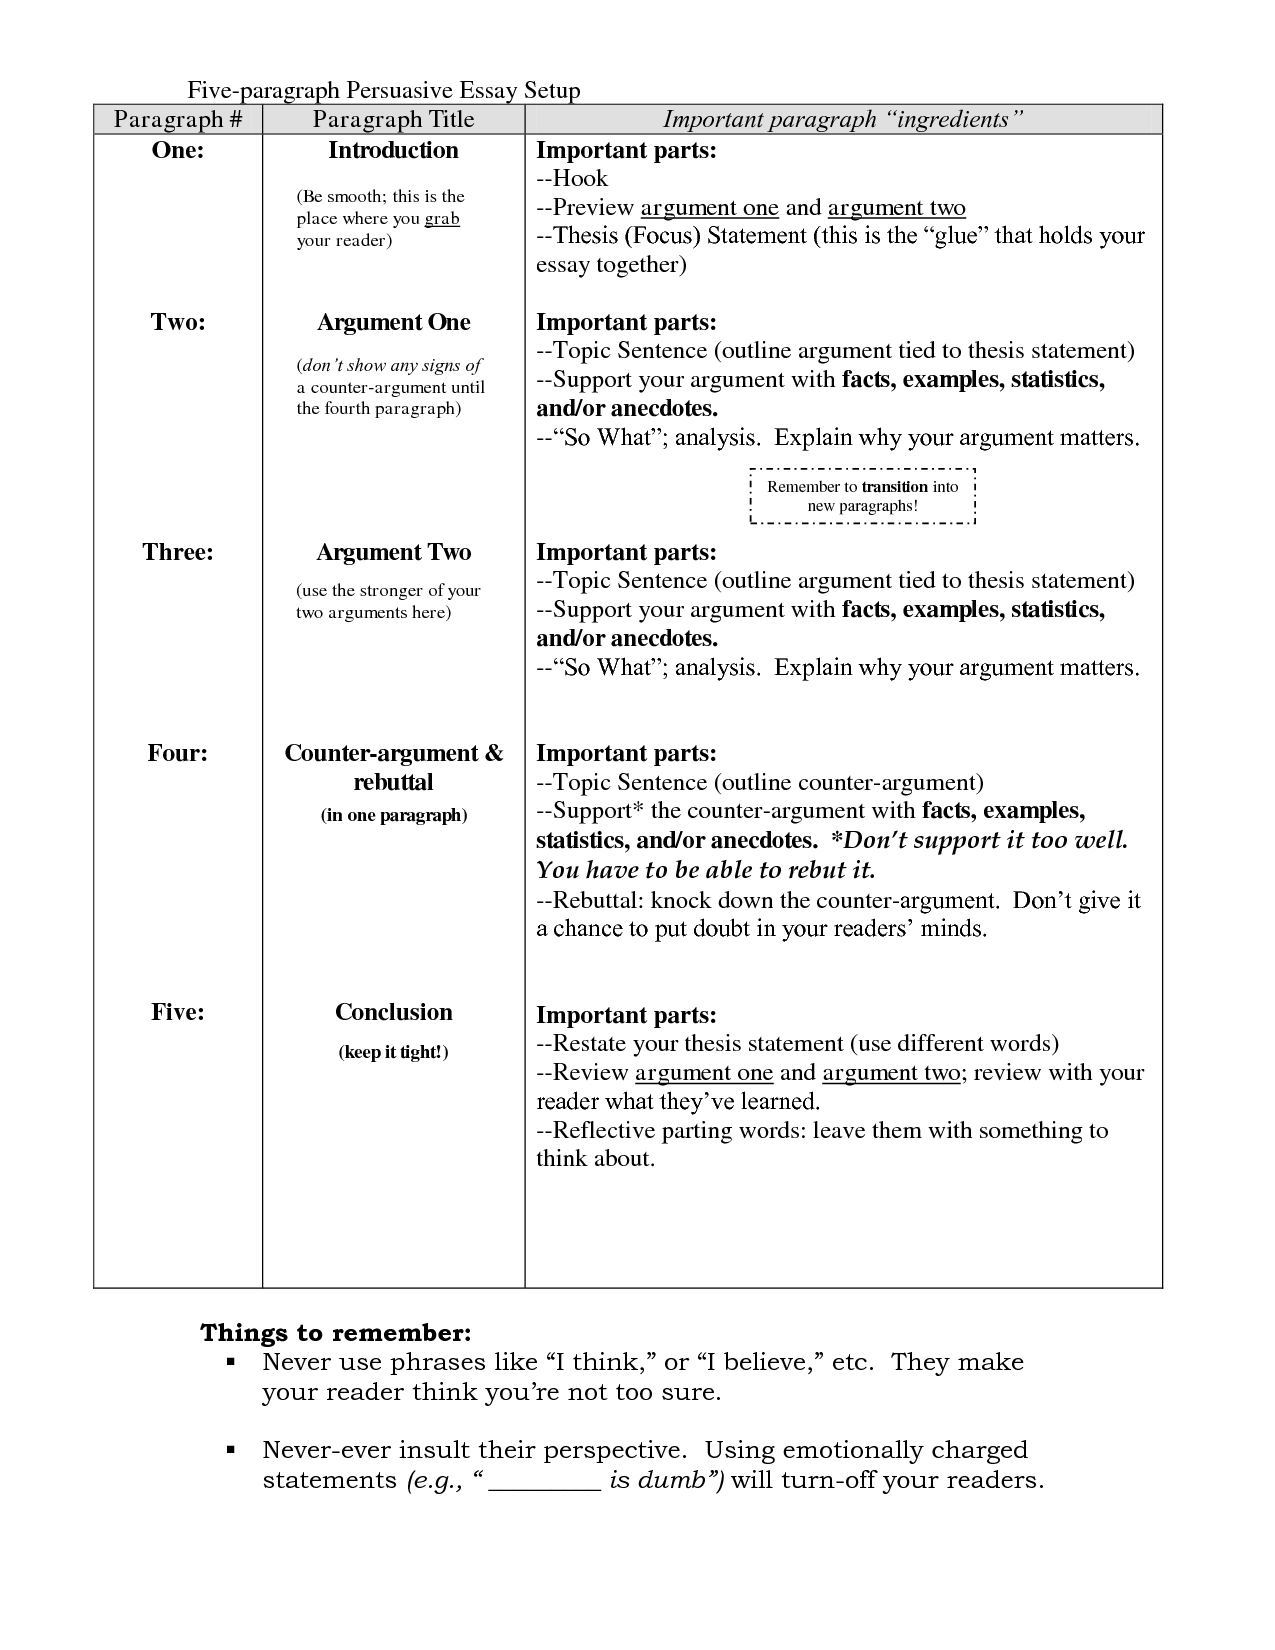 020 One Paragraph Essay How Important Is Thesis Statement In An To Write Introduction For Informative N5psy Argumentative About Book Pdf Yourselfs Start Analytical Opinion Best Yourself A Full